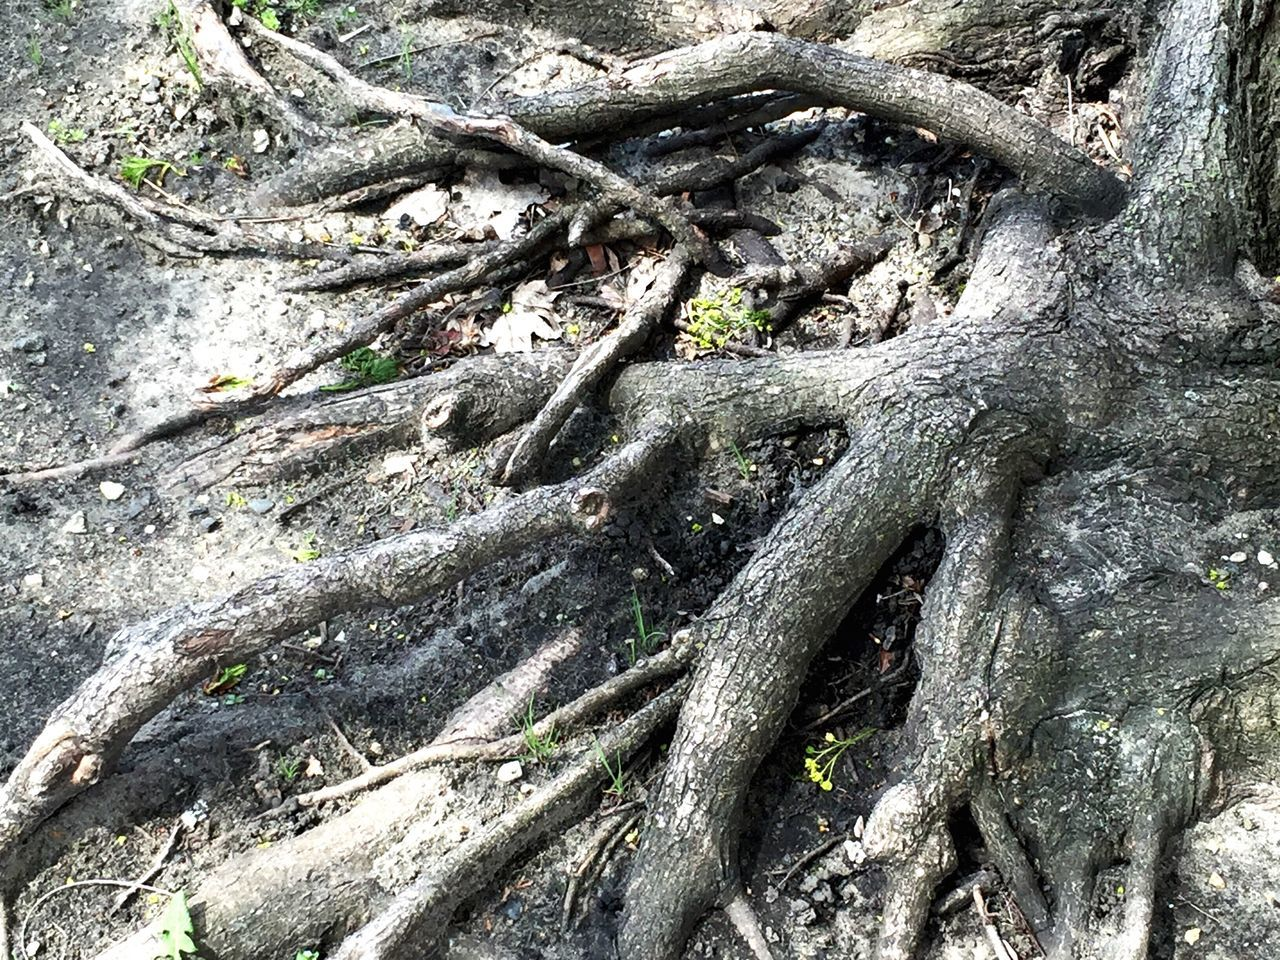 tree, tree trunk, day, no people, outdoors, root, nature, textured, high angle view, growth, full frame, close-up